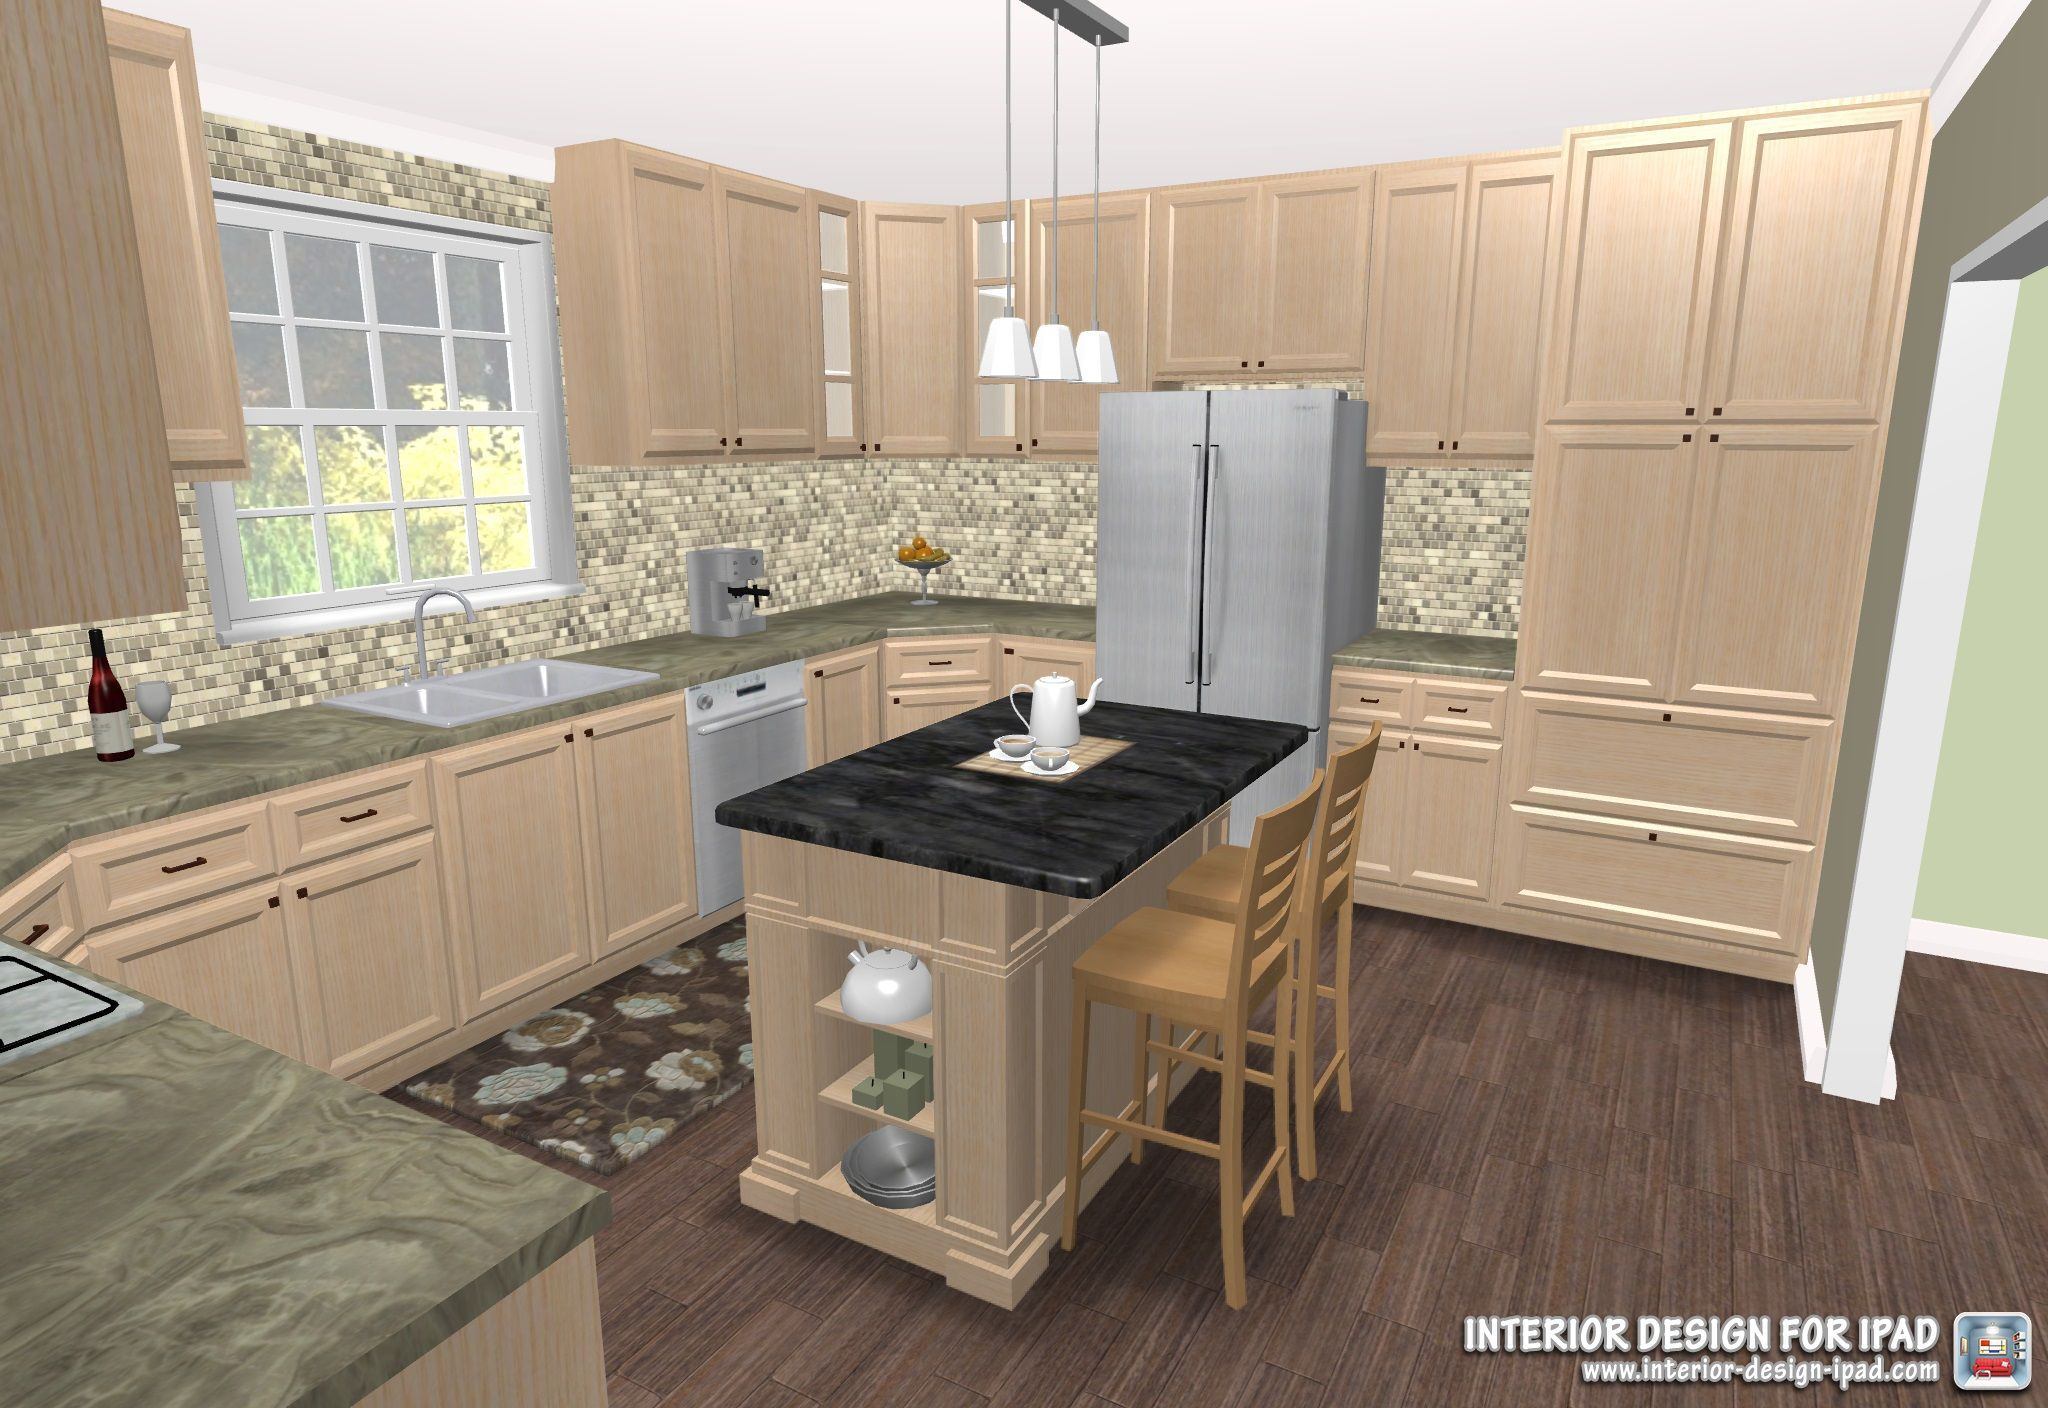 Kitchen Cabinets Design Software For Ipad Kitchen Renovation